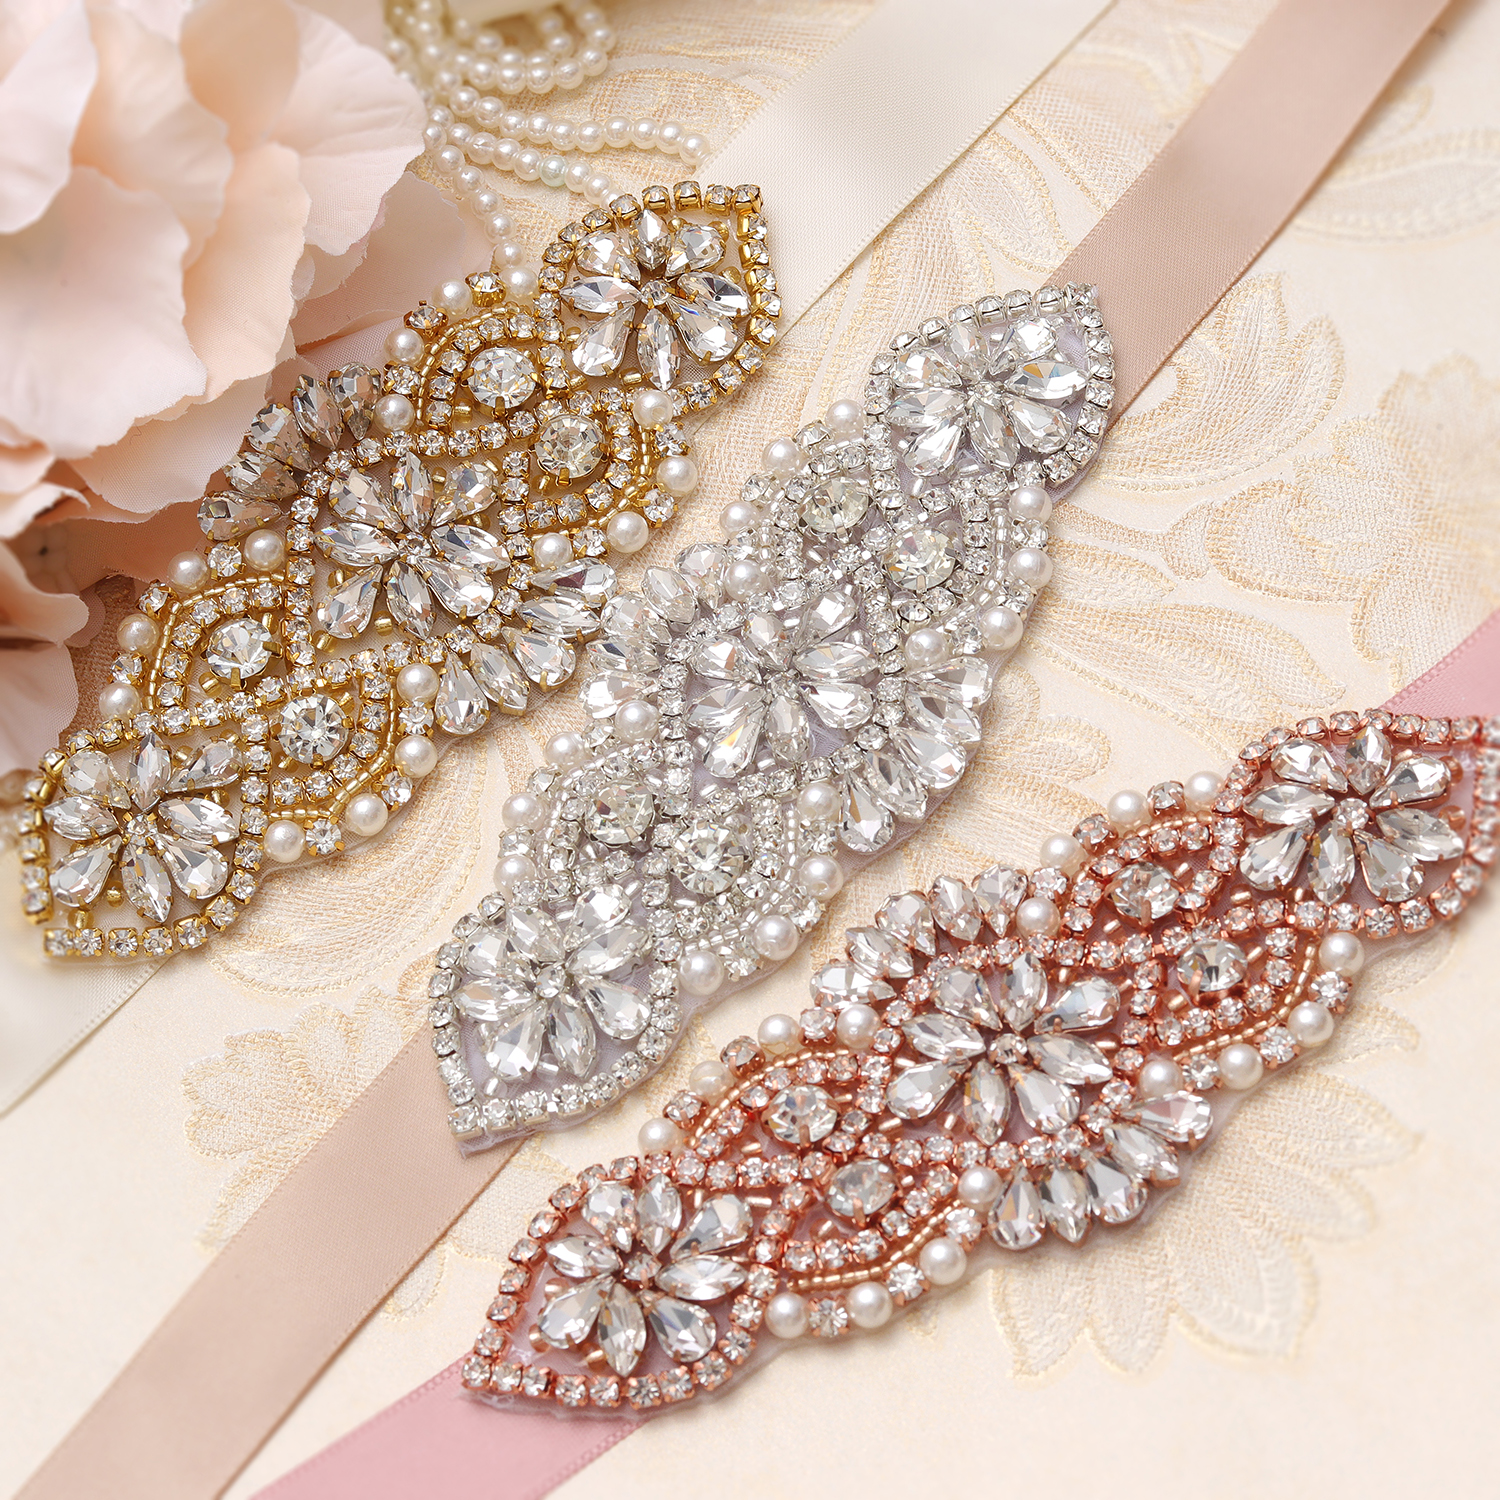 MissRDress Rhinestones Wedding Belt Handmade Pearls Bridal Belt Silver Crystal Sash Belt For Bridal Wedding Dresses JK852